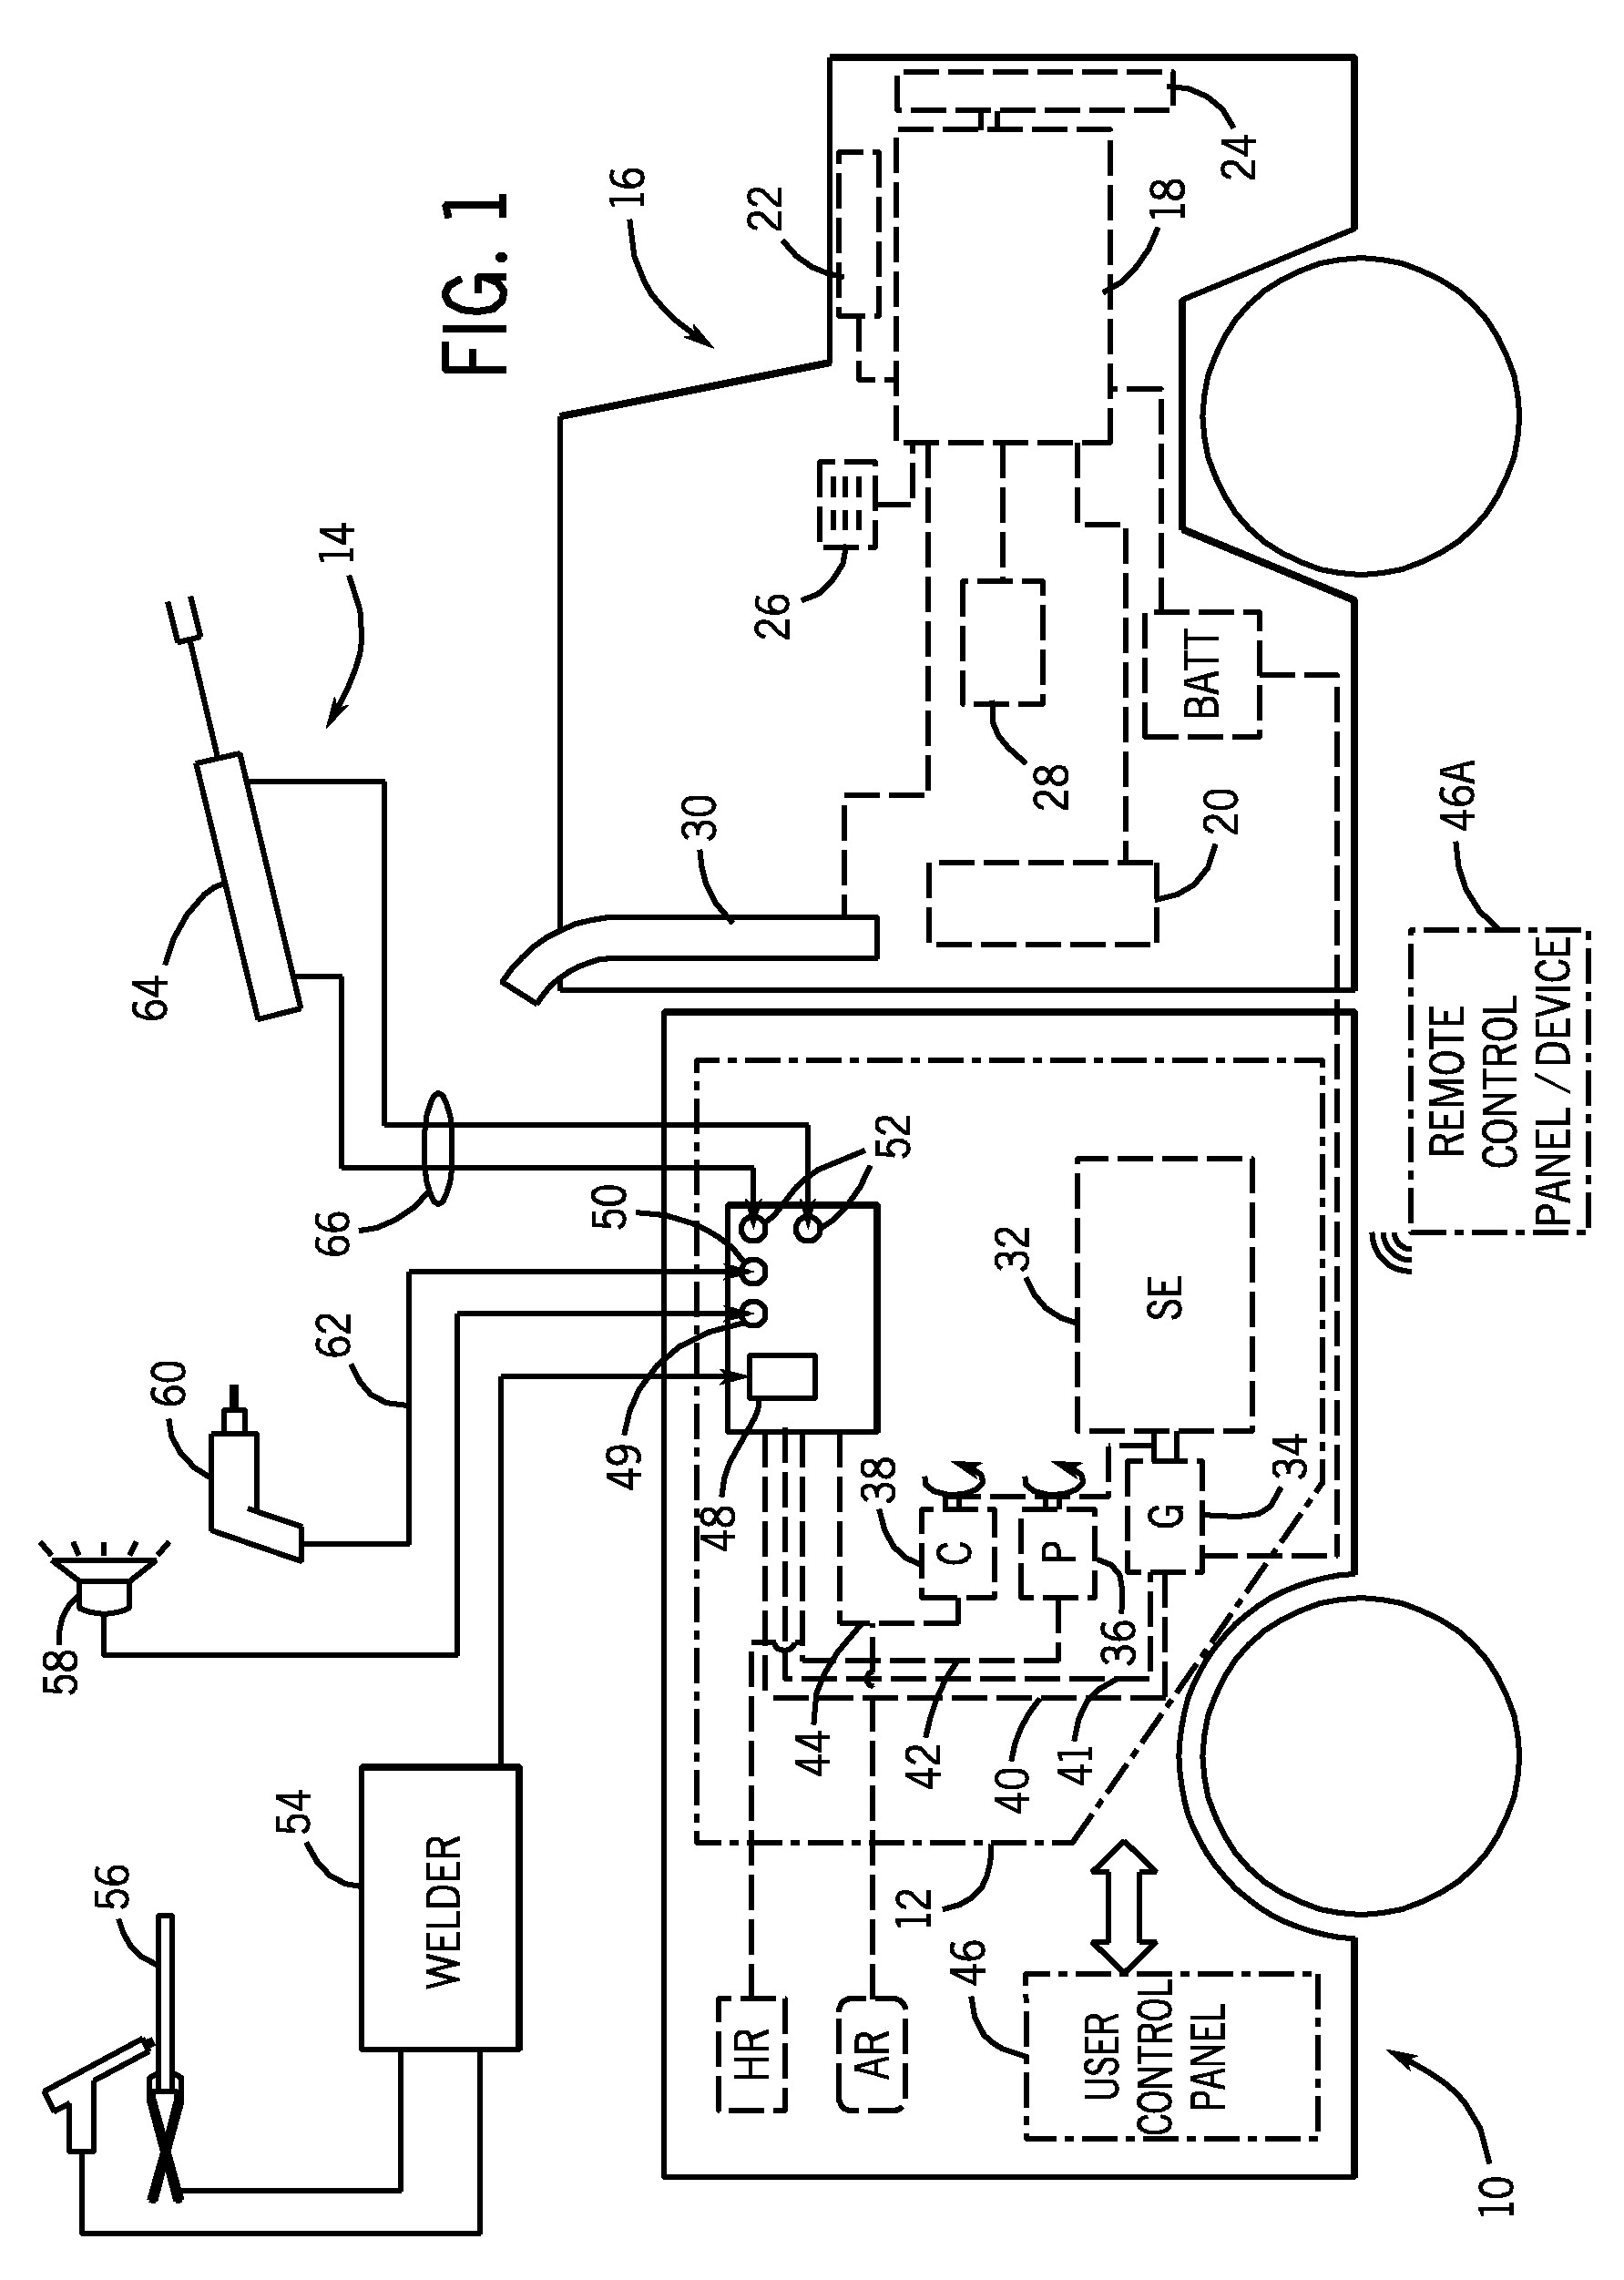 Hydraulic Pump Diagram Lift Without Pressure Control Wiring Monarch Of